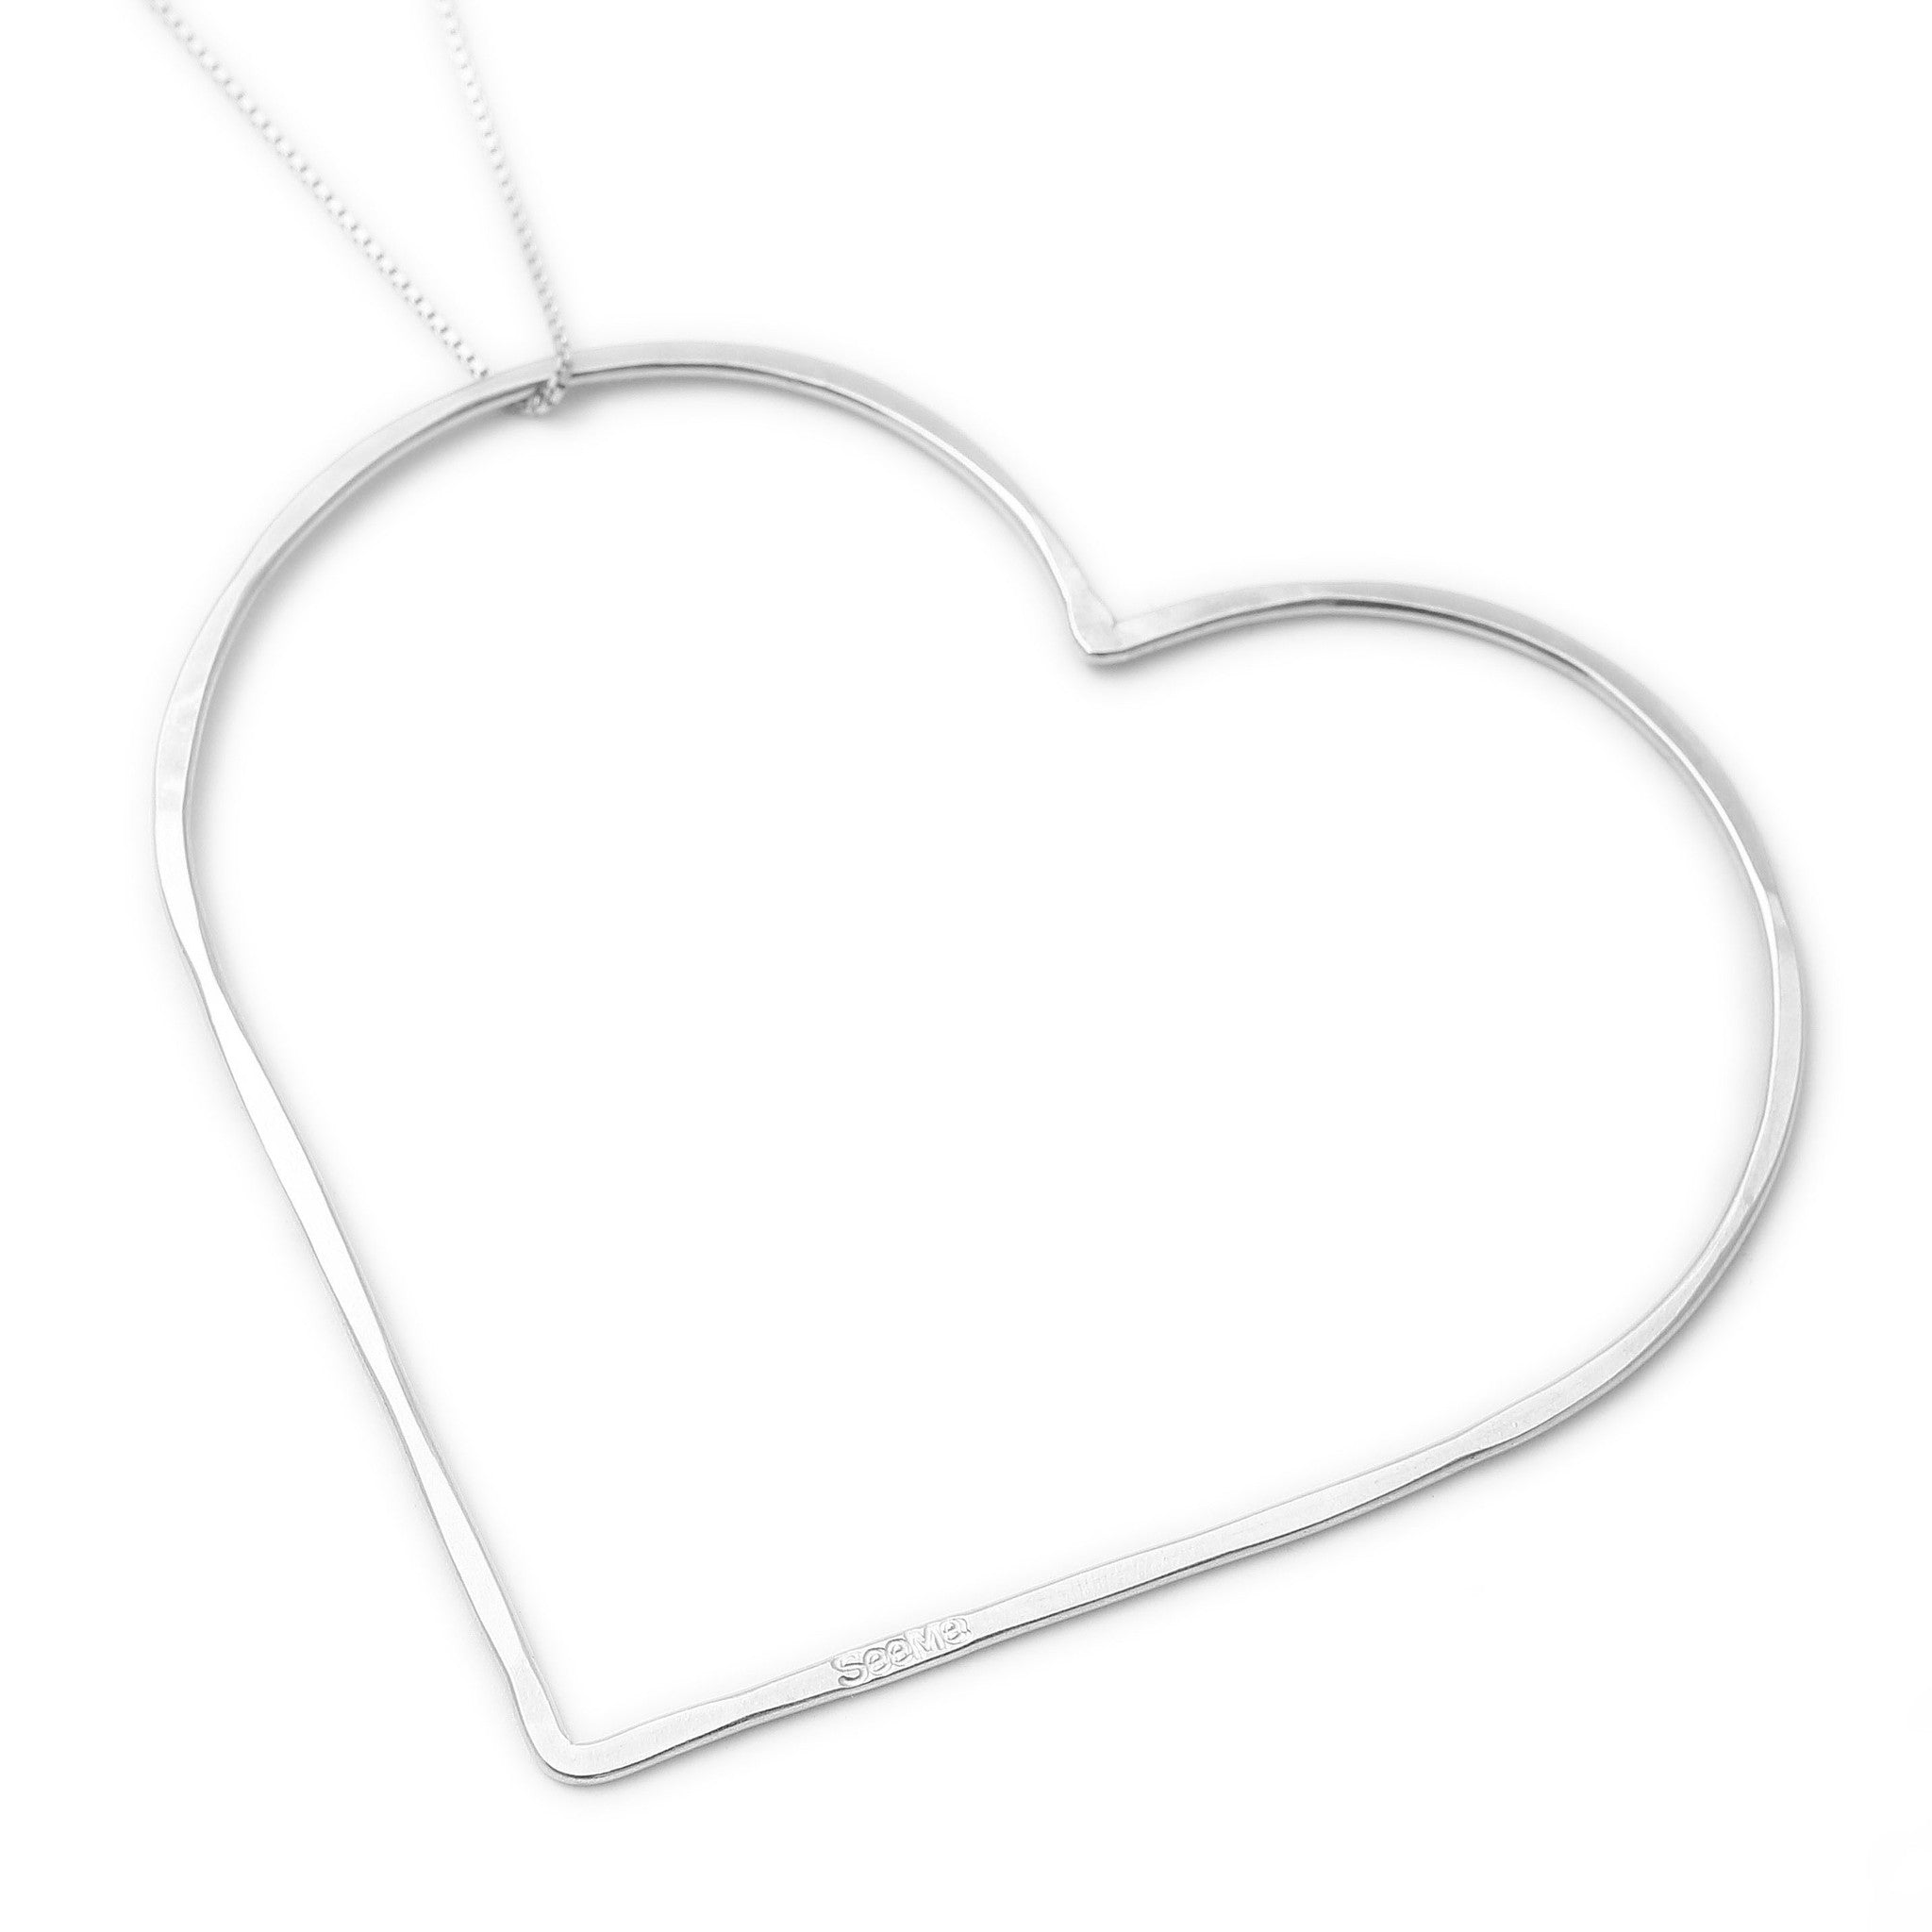 free for necklace set of two sterling locket heart personal use miadora getdrawings at drawing silver com necklaces